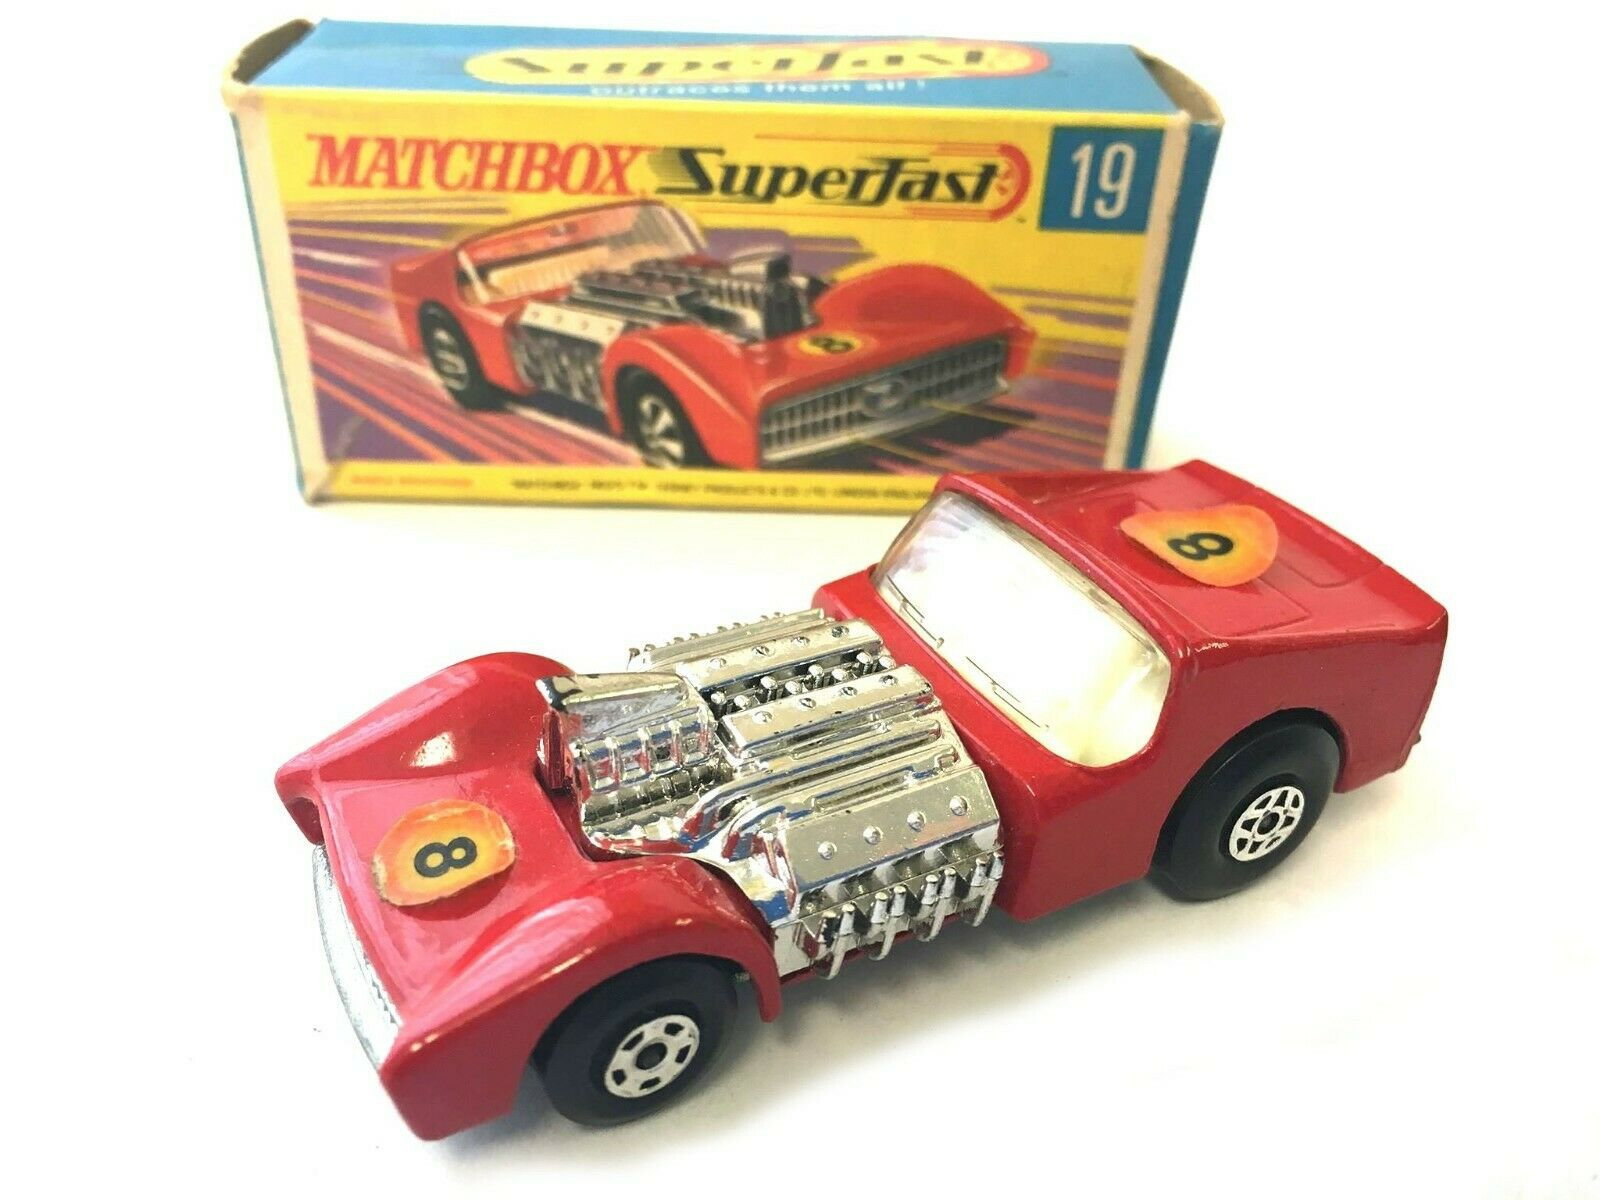 Matchbox Superfast 19 Road Dragster rosso Vintage En Caja Original